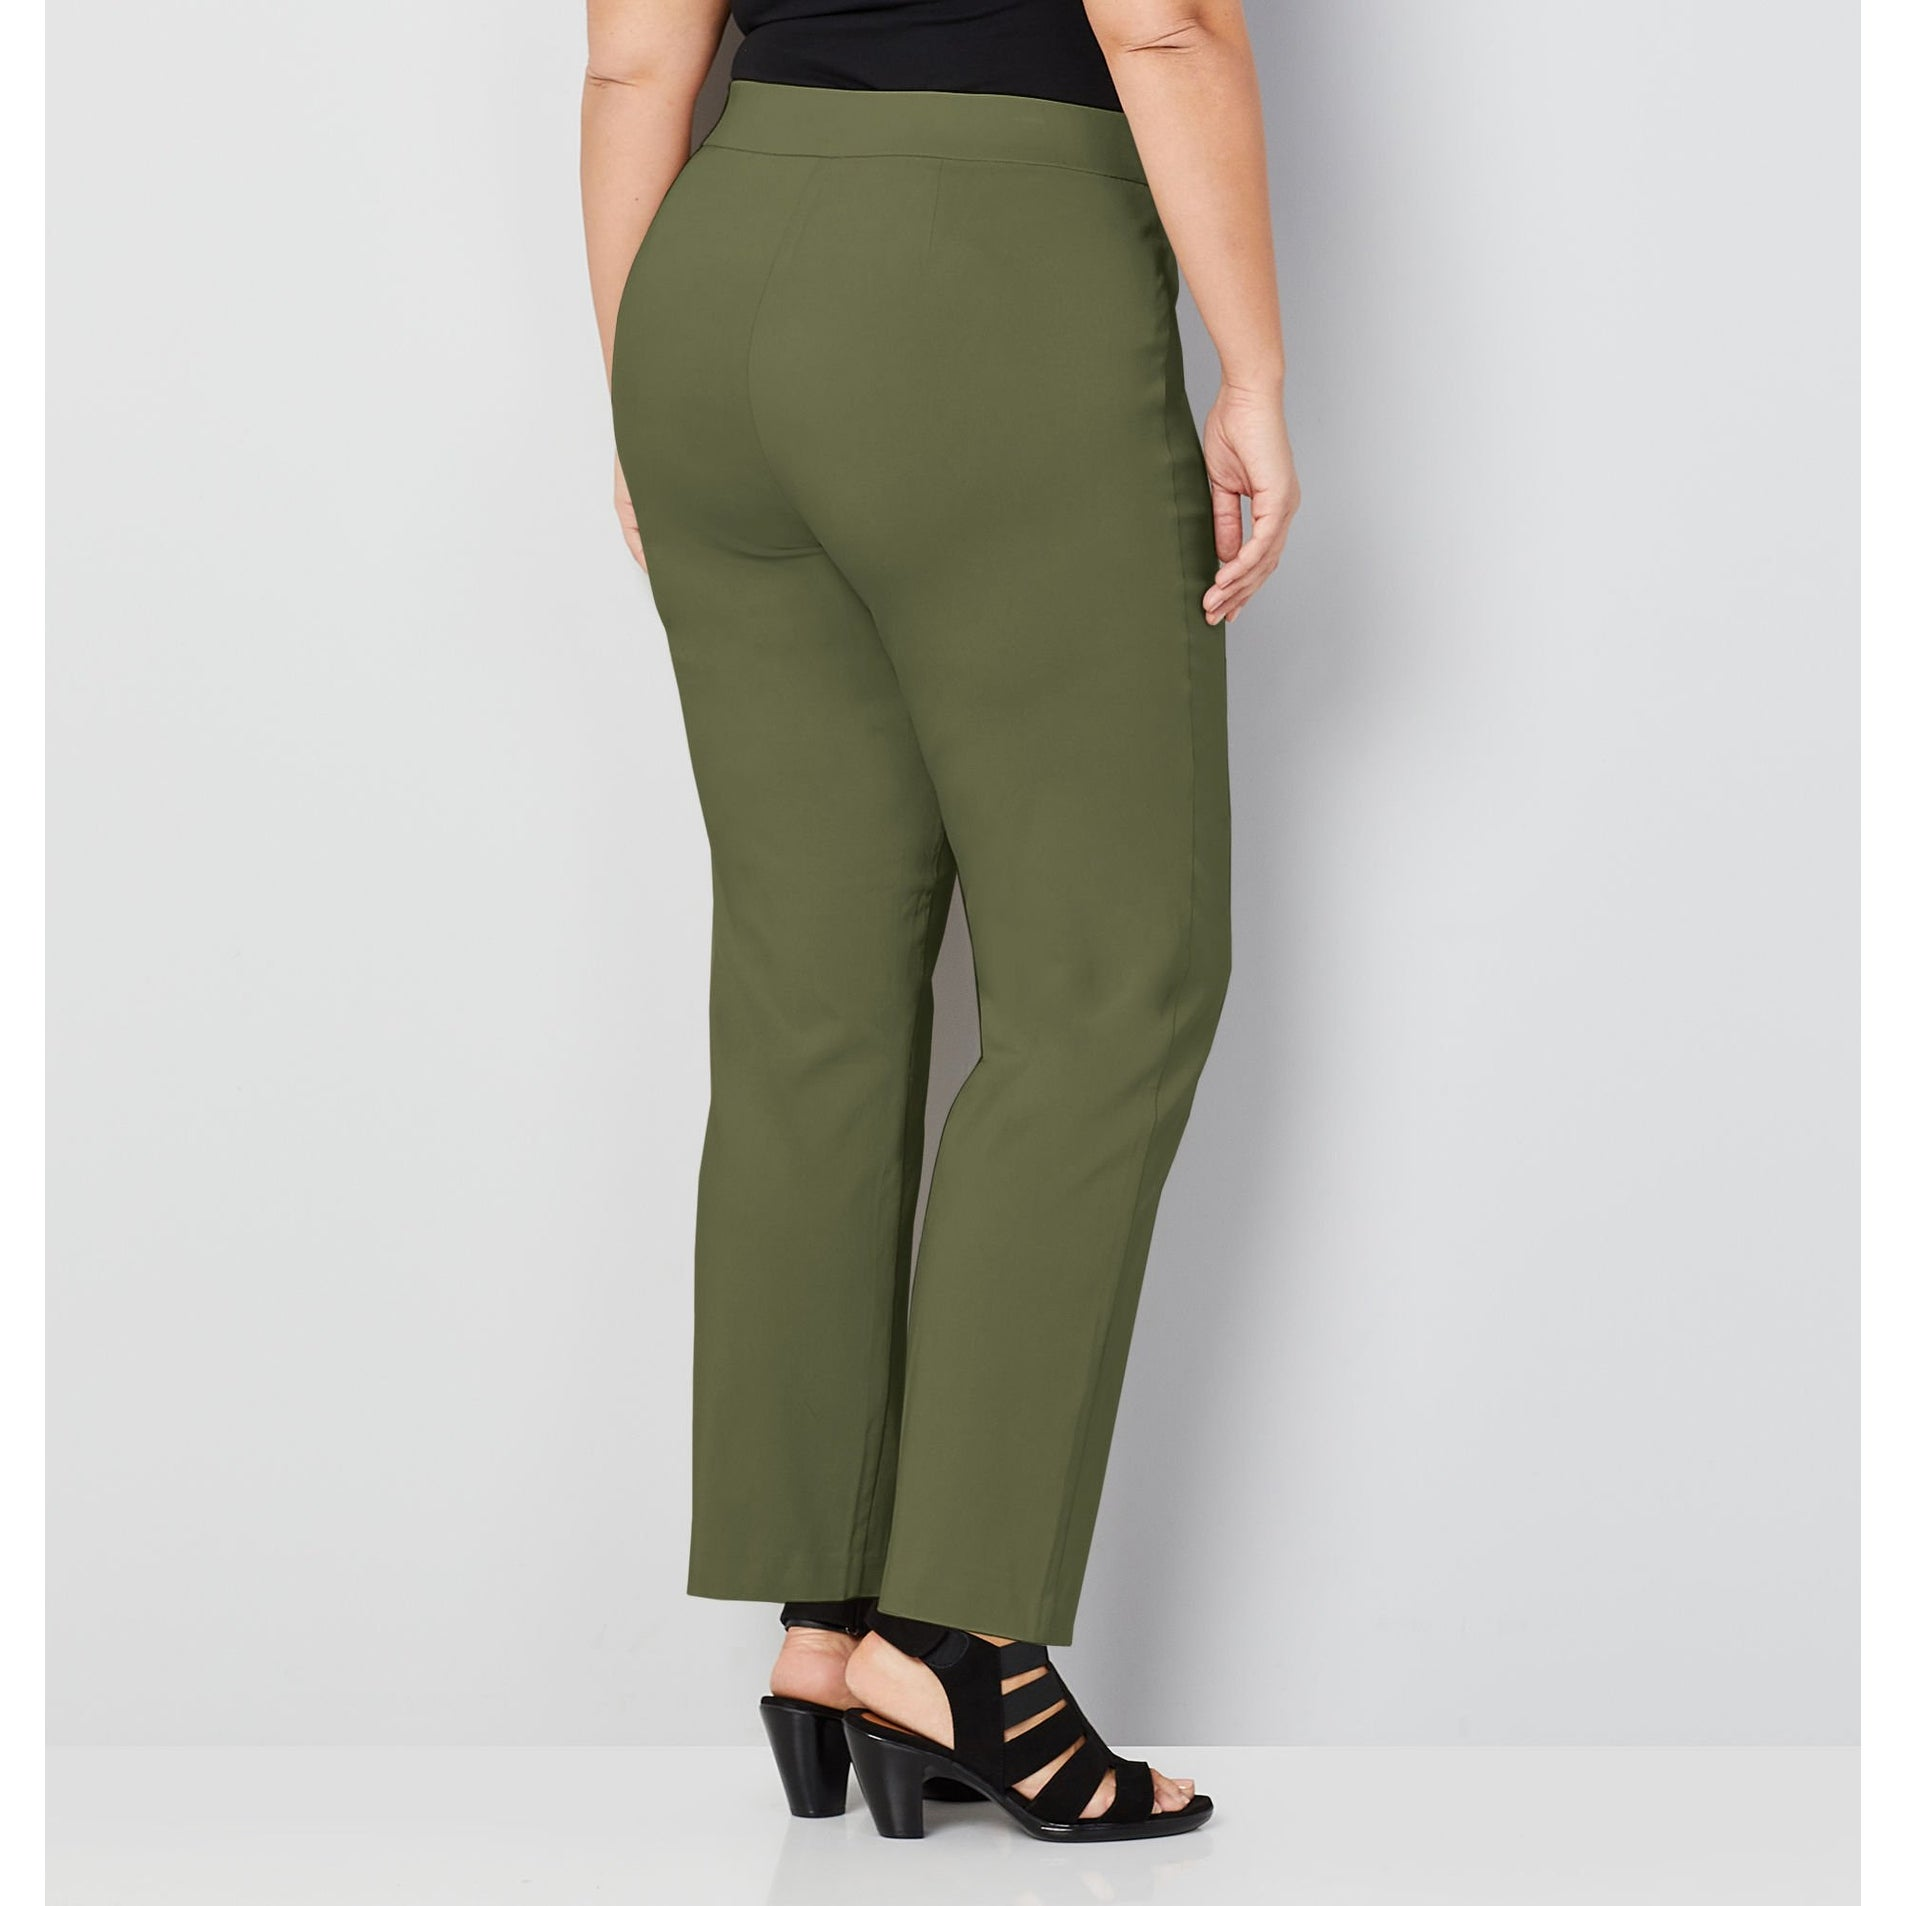 a1e83a926 Shop AVENUE Women s Super Stretch Pull-On Pant with Comfort Waist in Beetle  Green - Free Shipping On Orders Over  45 - Overstock - 27420788